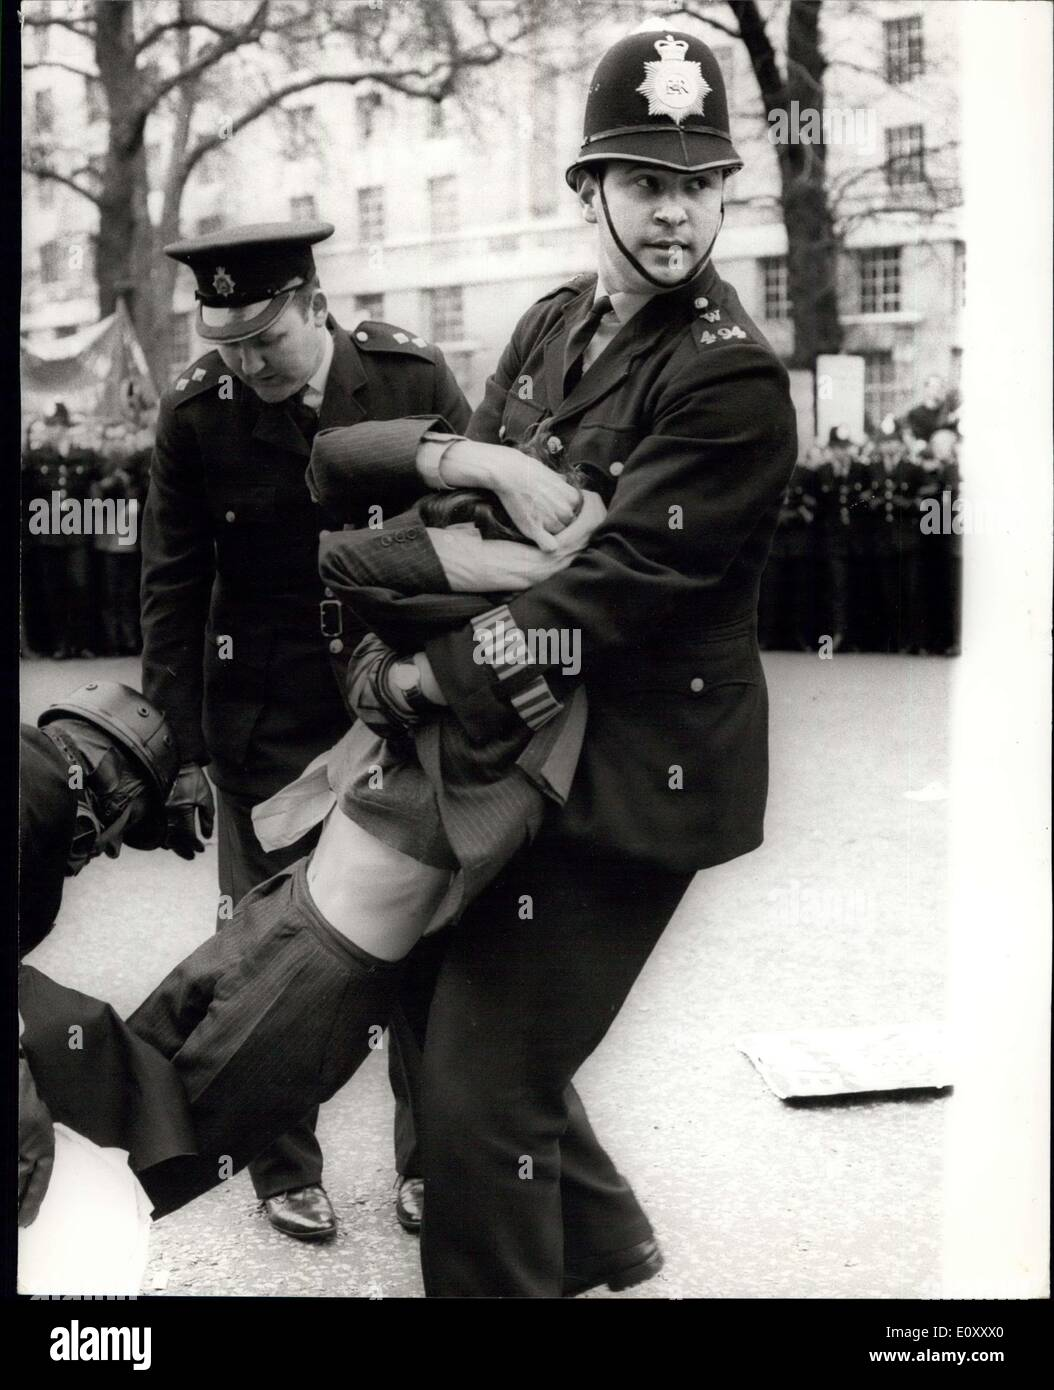 Mar. 24, 1968 - Youth Campaign for Nuclear Disarmament Stage Anti-Vietnam war Demonstration: The Youth Campaign for Nuclear Disarmament today staged an anti-Vietnam war demonstration in Trafalgar Square, followed by a march to Downing Street, where petitions were handed in to No. 10. Photo Shows One of the demonstrators is forcably removed by police at the entrance to Downing Street during the demonstration today. - Stock Image